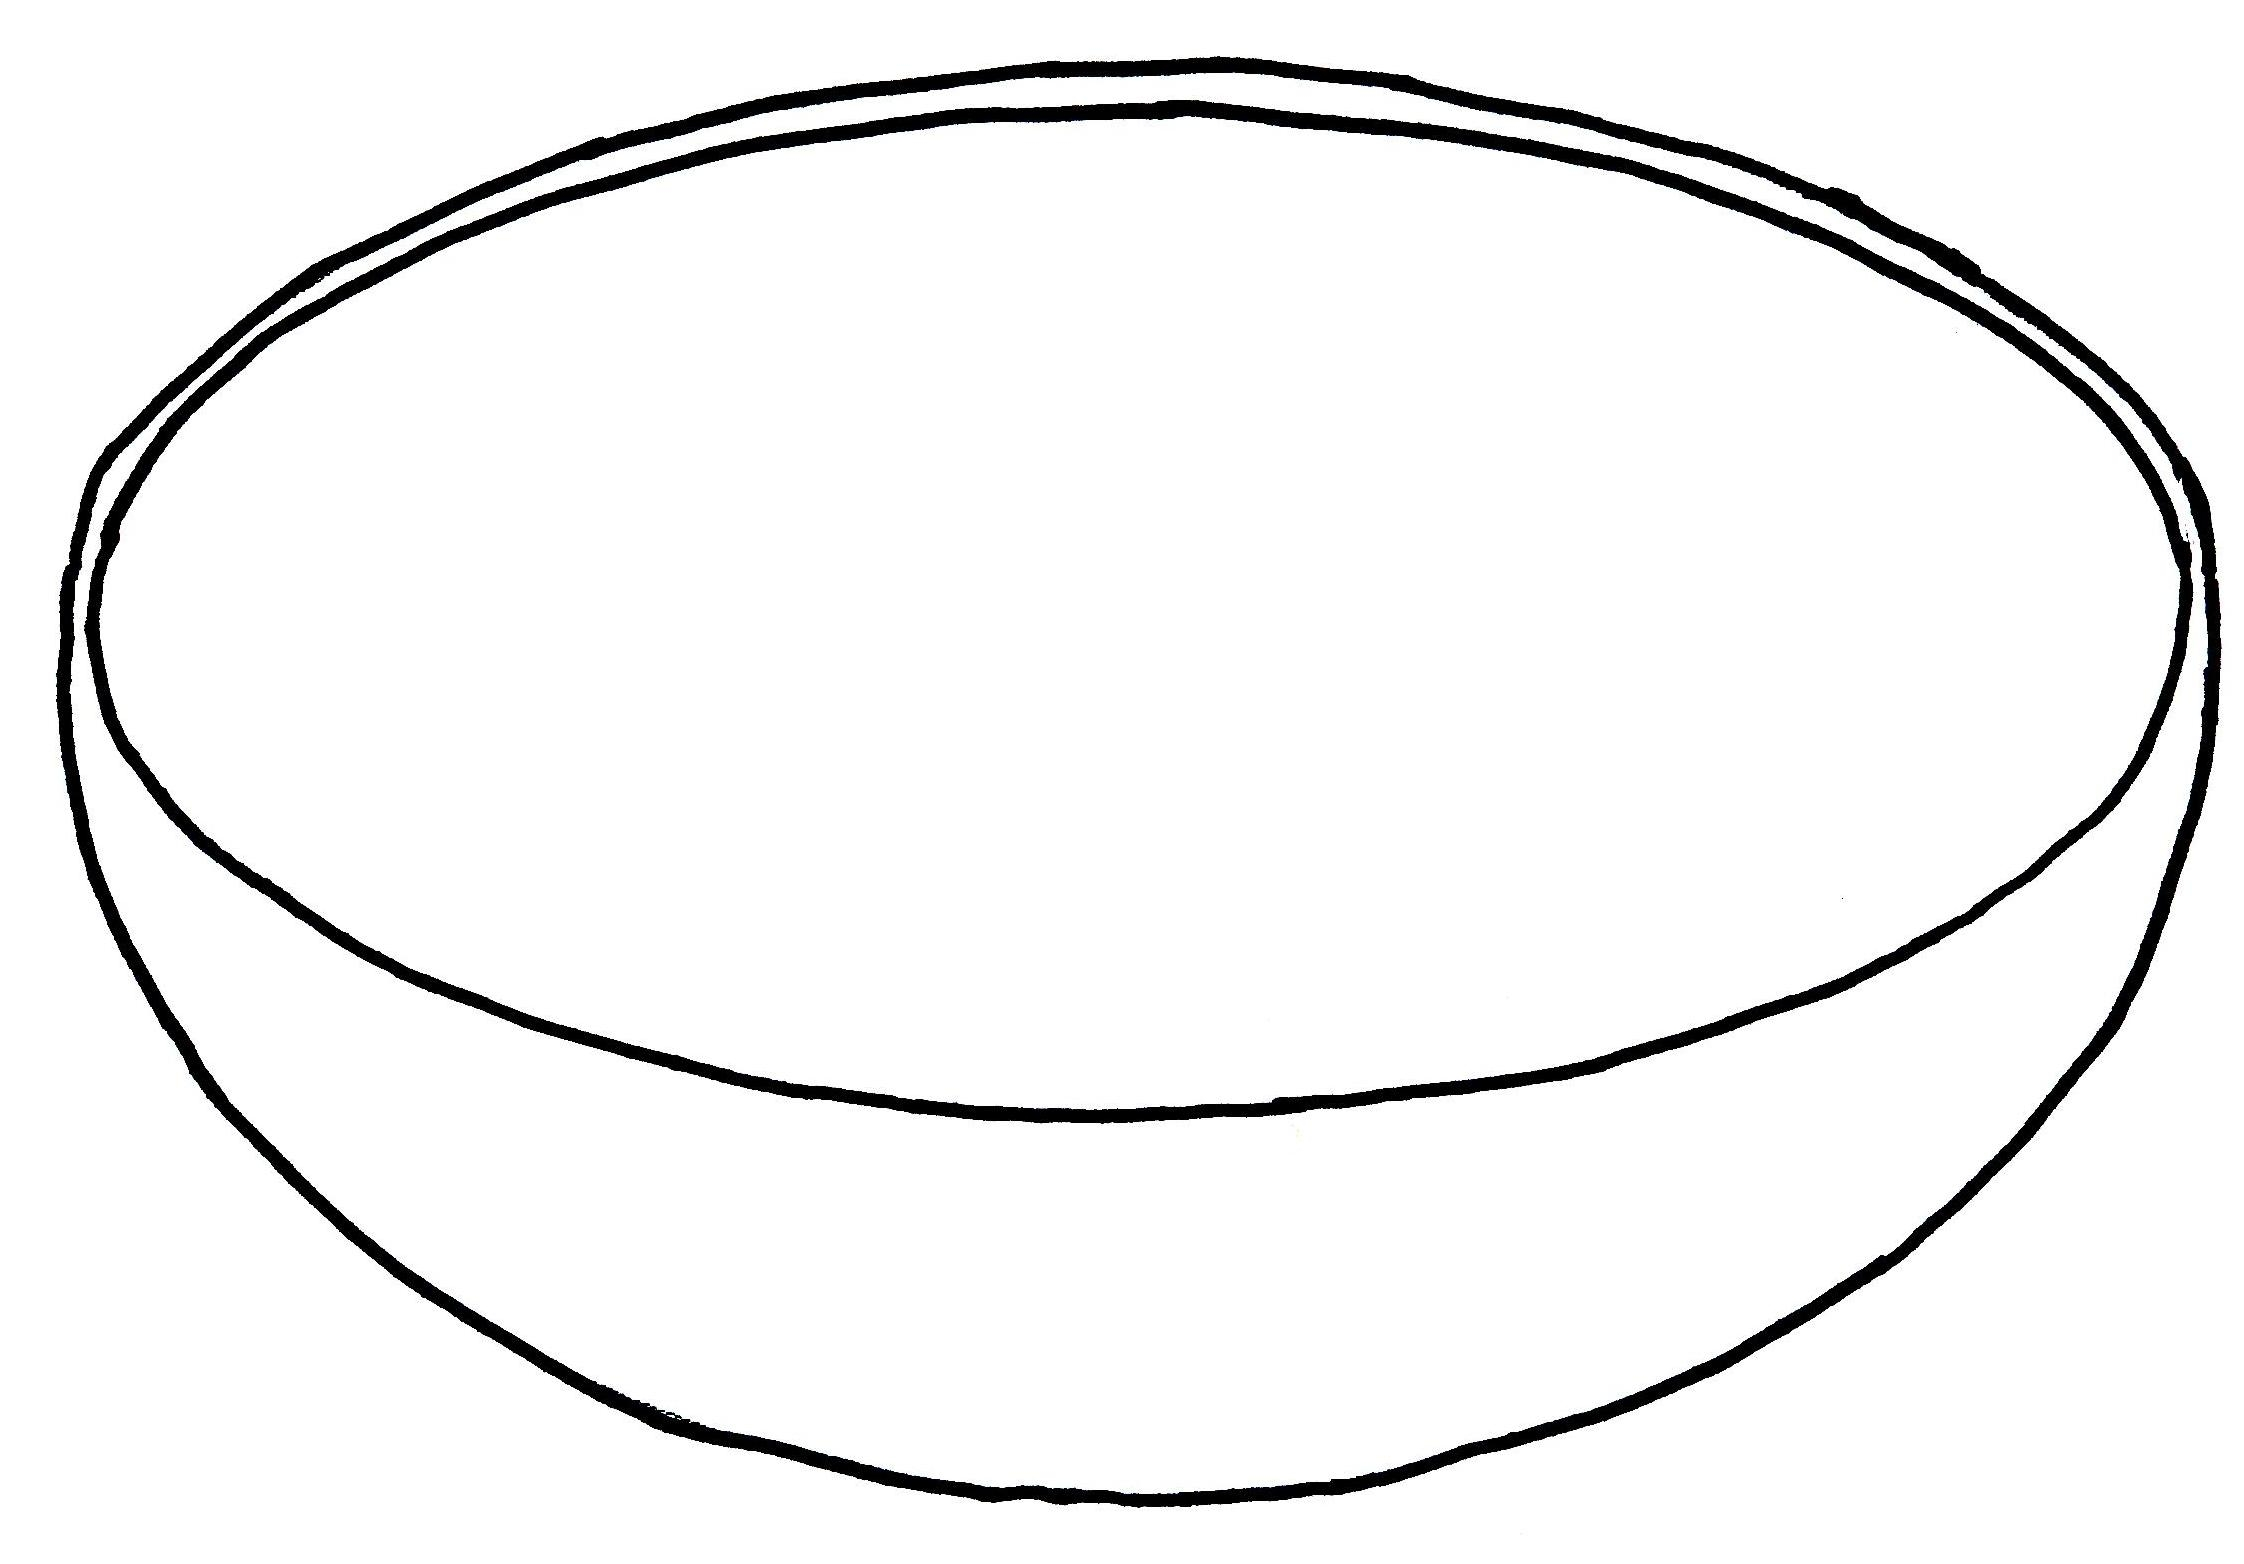 Bowl Coloring Page